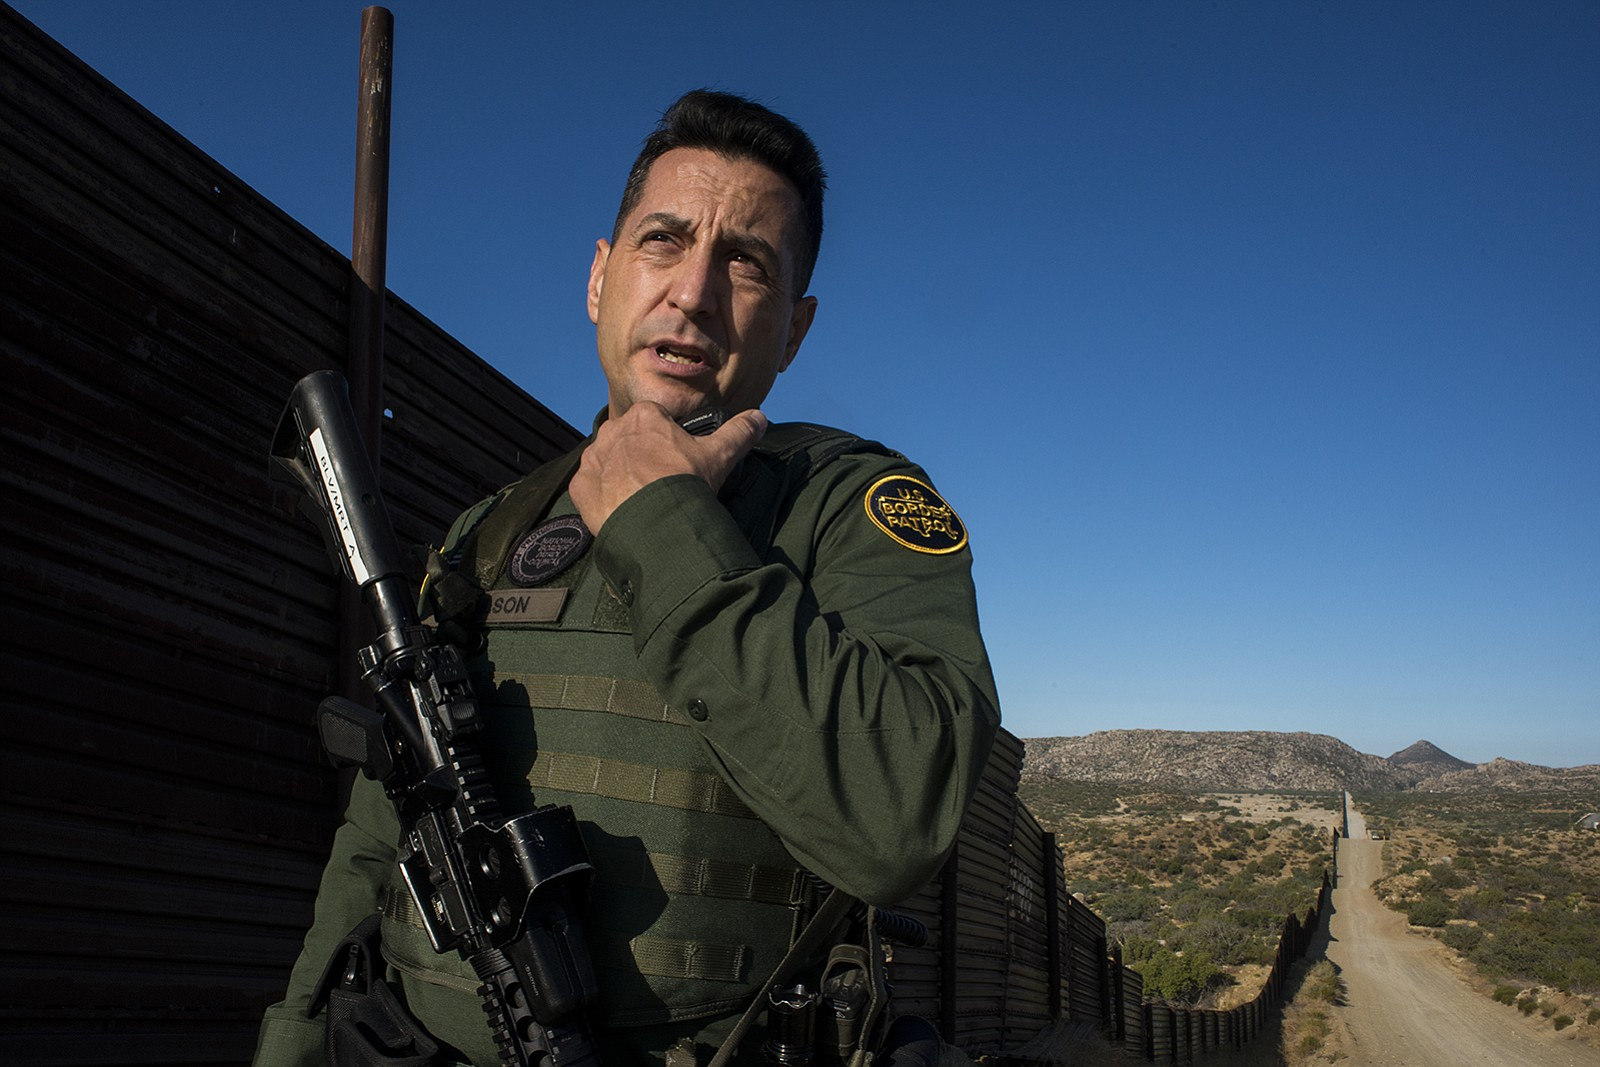 Border Patrol agent Joshua Wilson radios dispatchers to notify them of his lo...